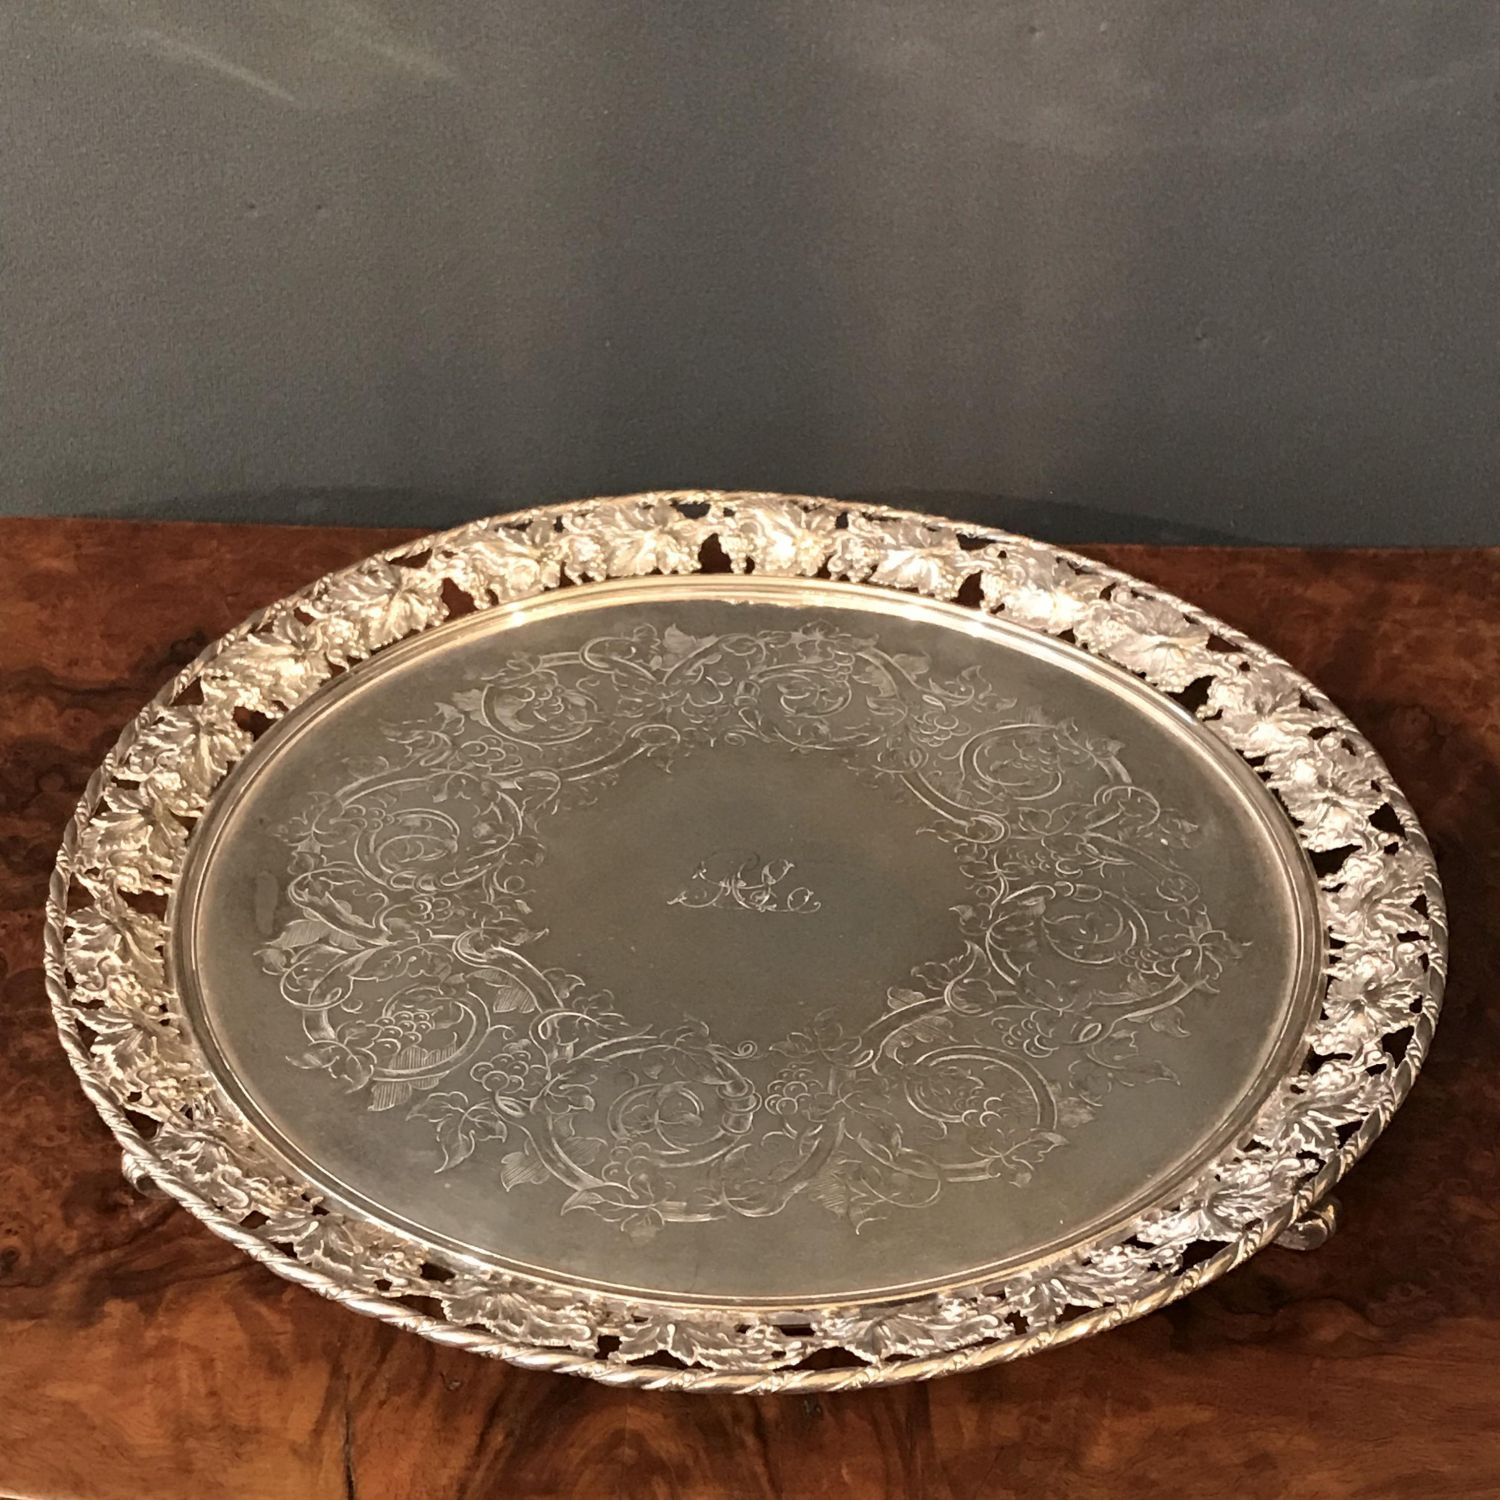 19th Century Silver Plated Circular Tray Antique Silver Plate Hemswell Antique Centres